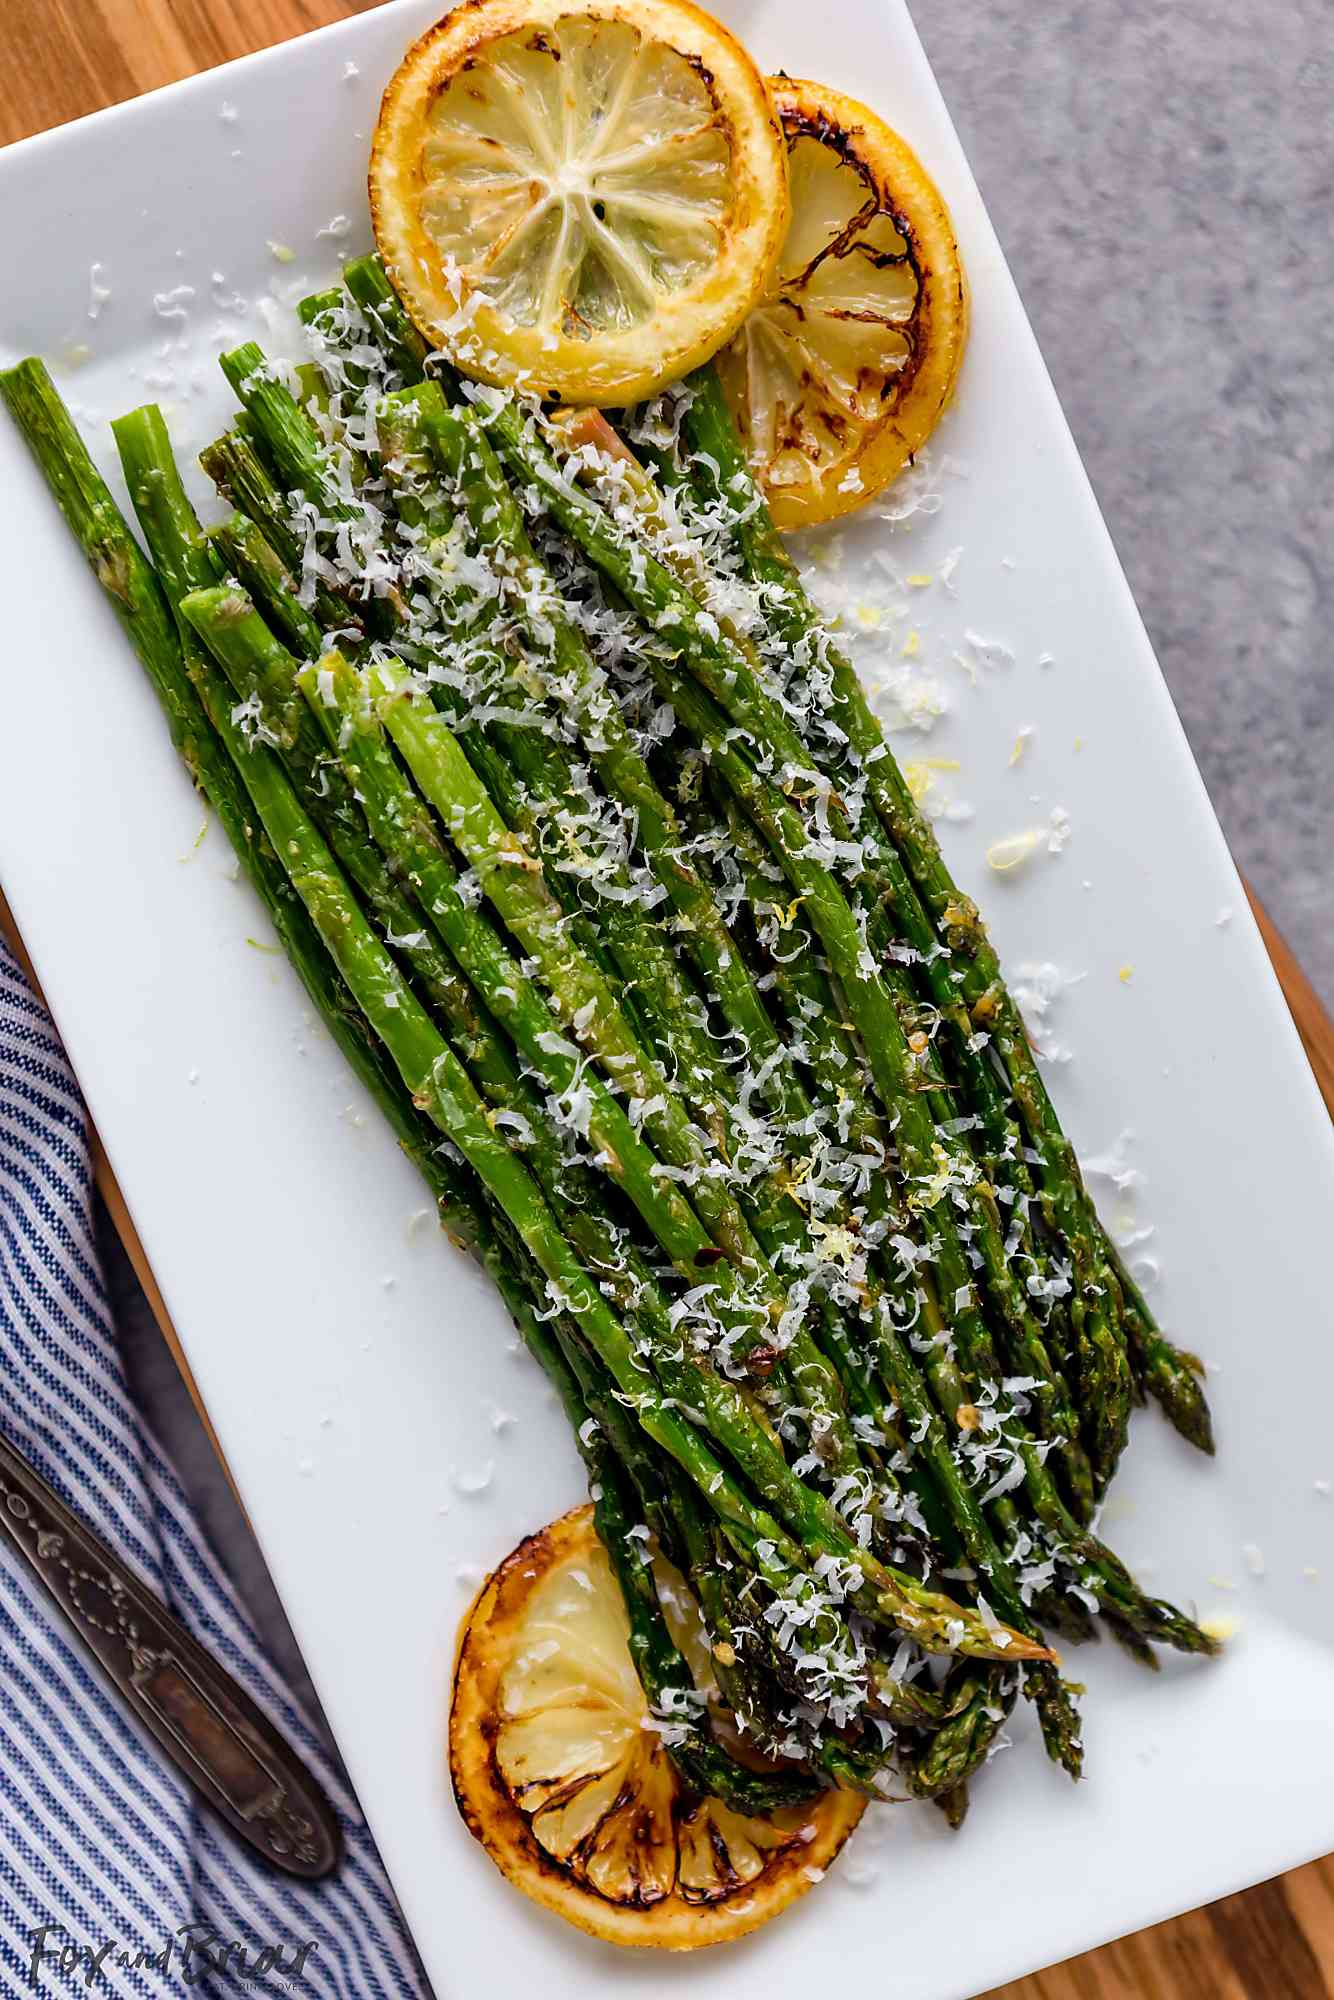 Roasted asparagus on a plate with lemon slices